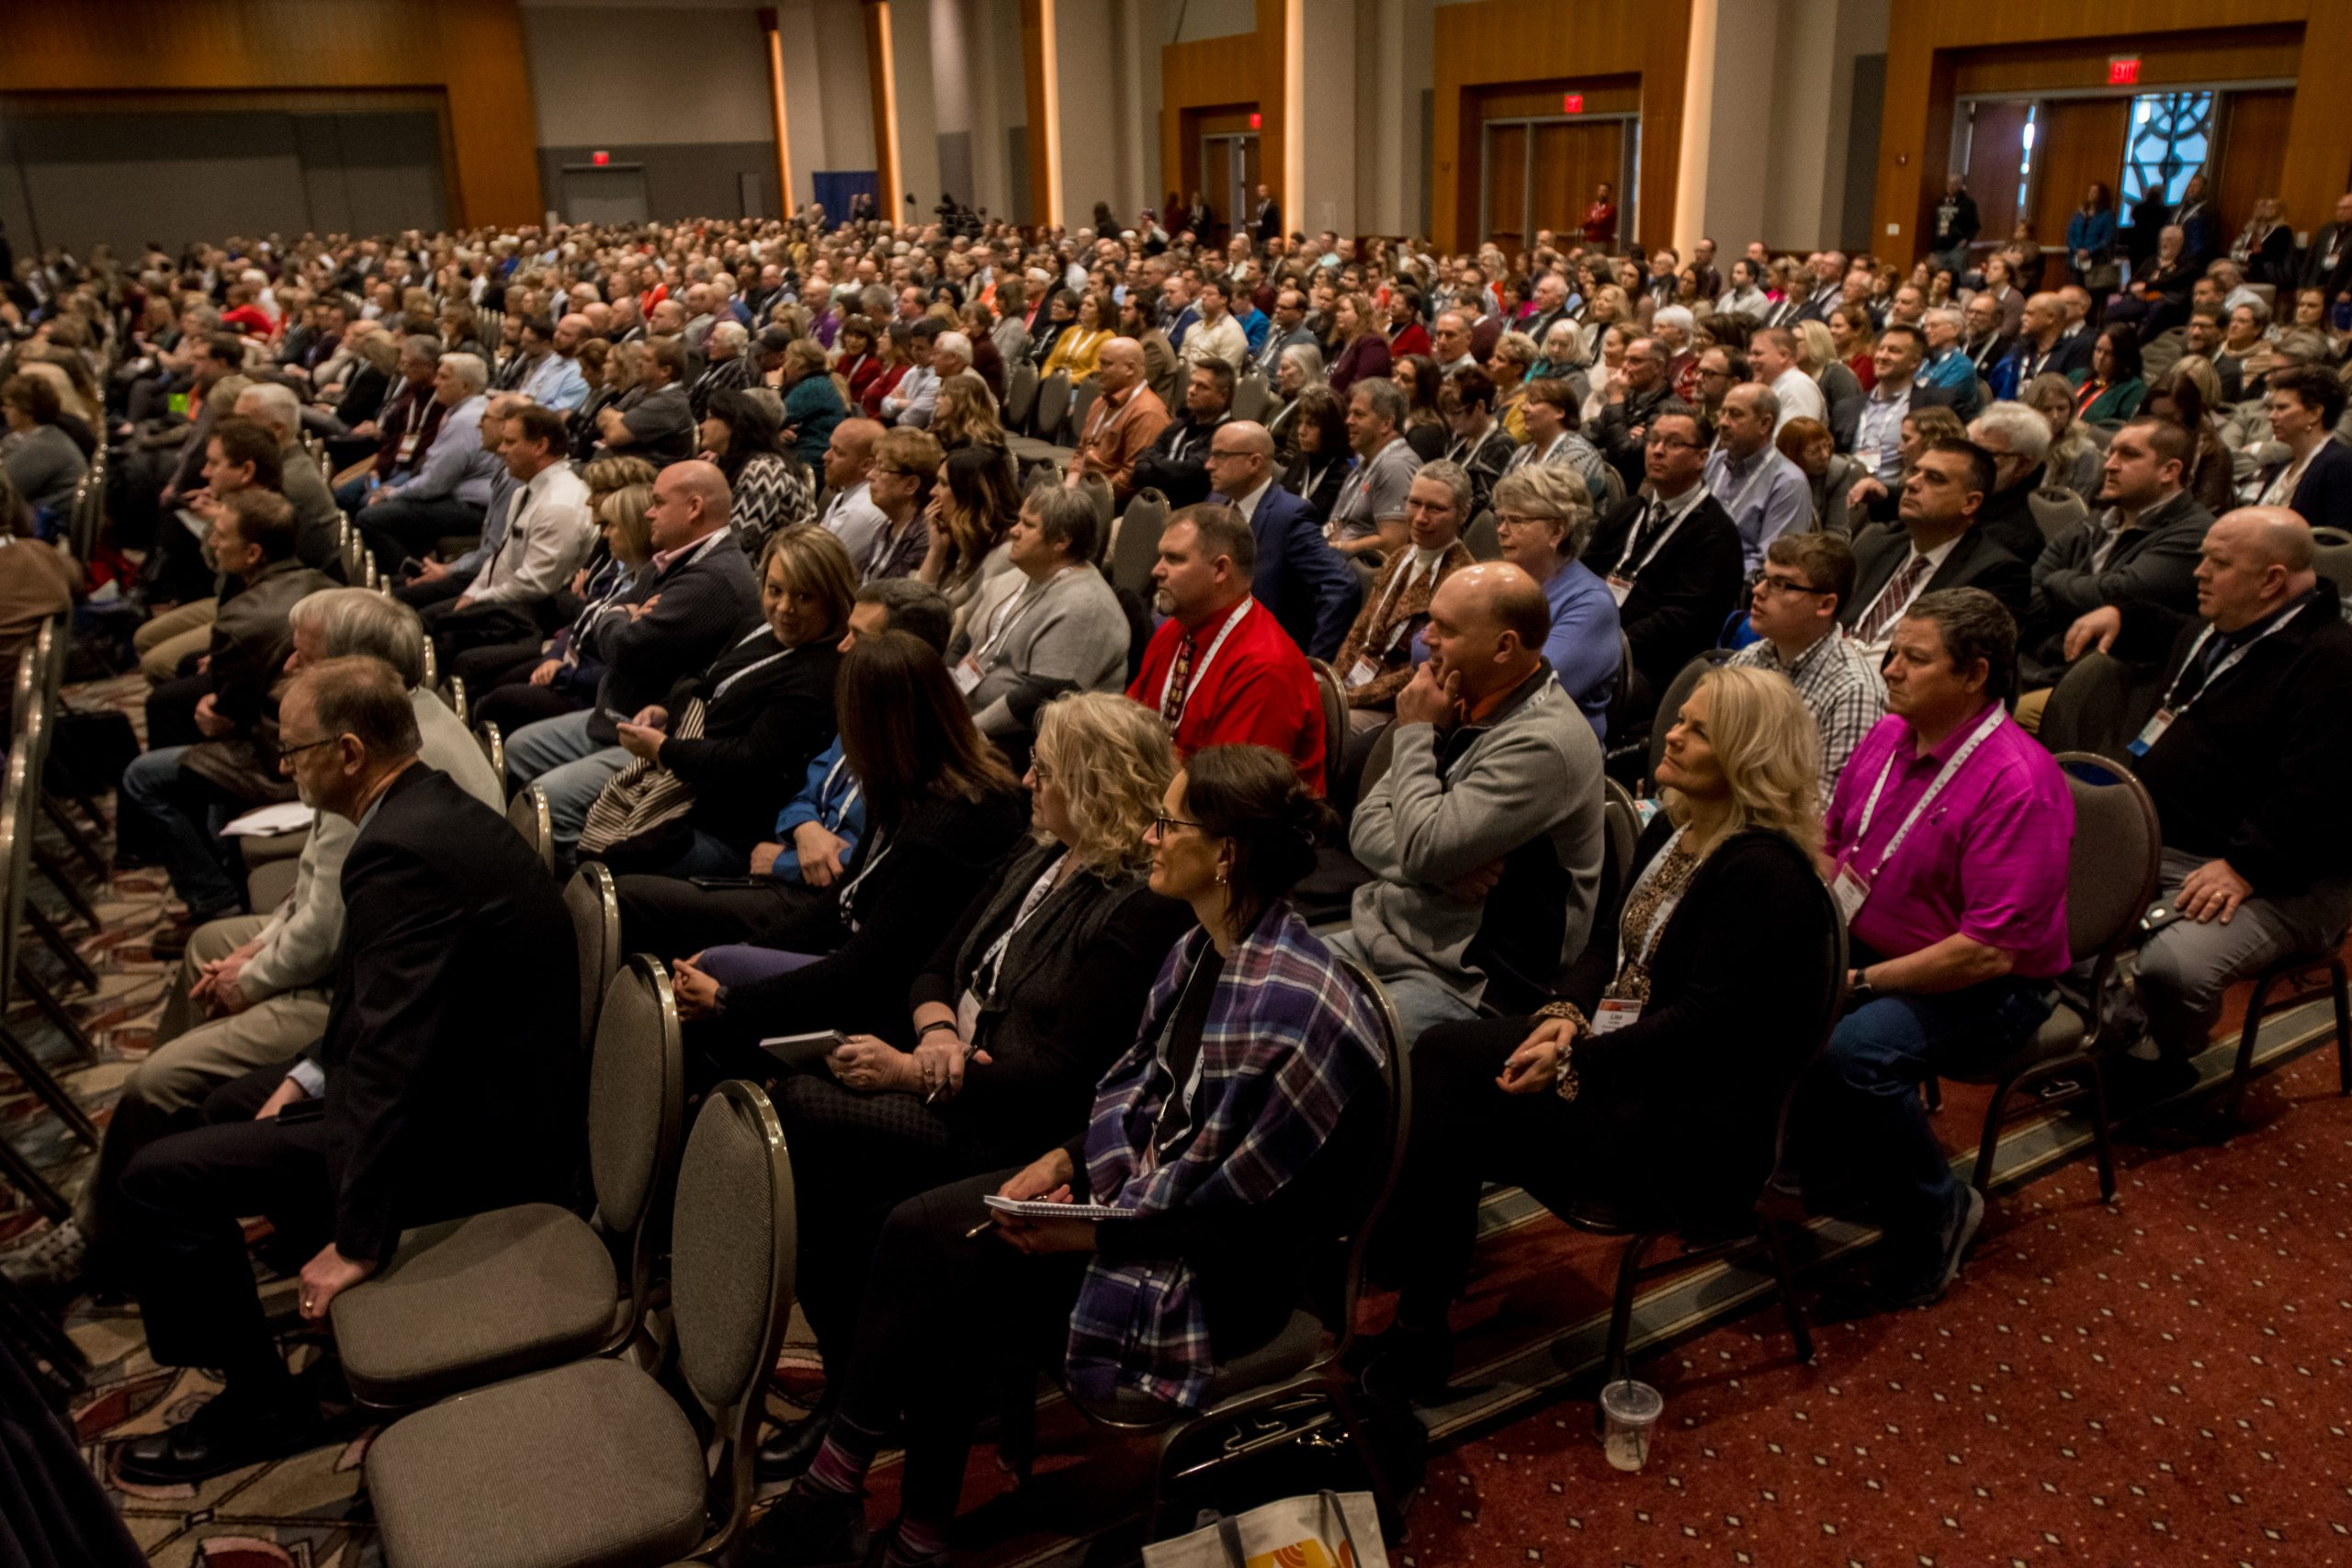 Attendees at the State Education Convention attend a general session.